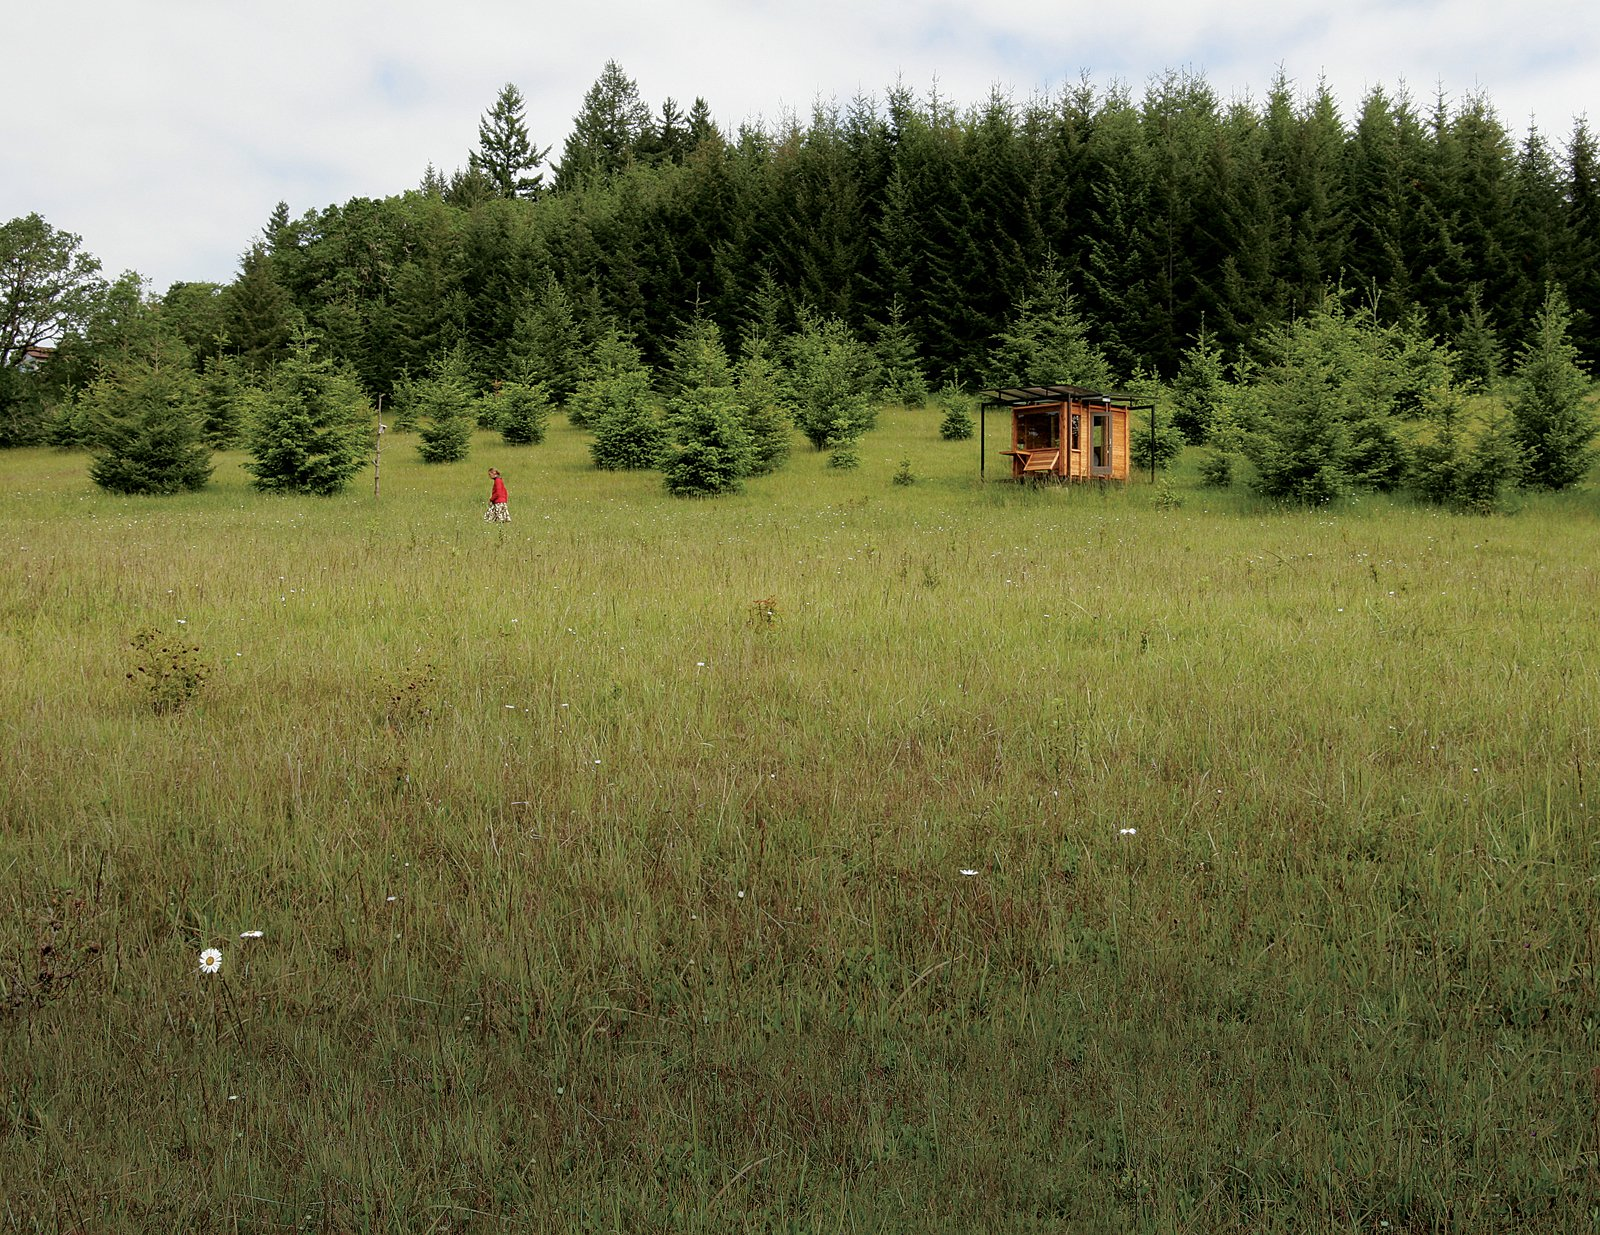 #outdoor #green #cabin #field #flower #meadow #tree #smallspace #tiny   Cabin by DAVE MORIN from Outdoor